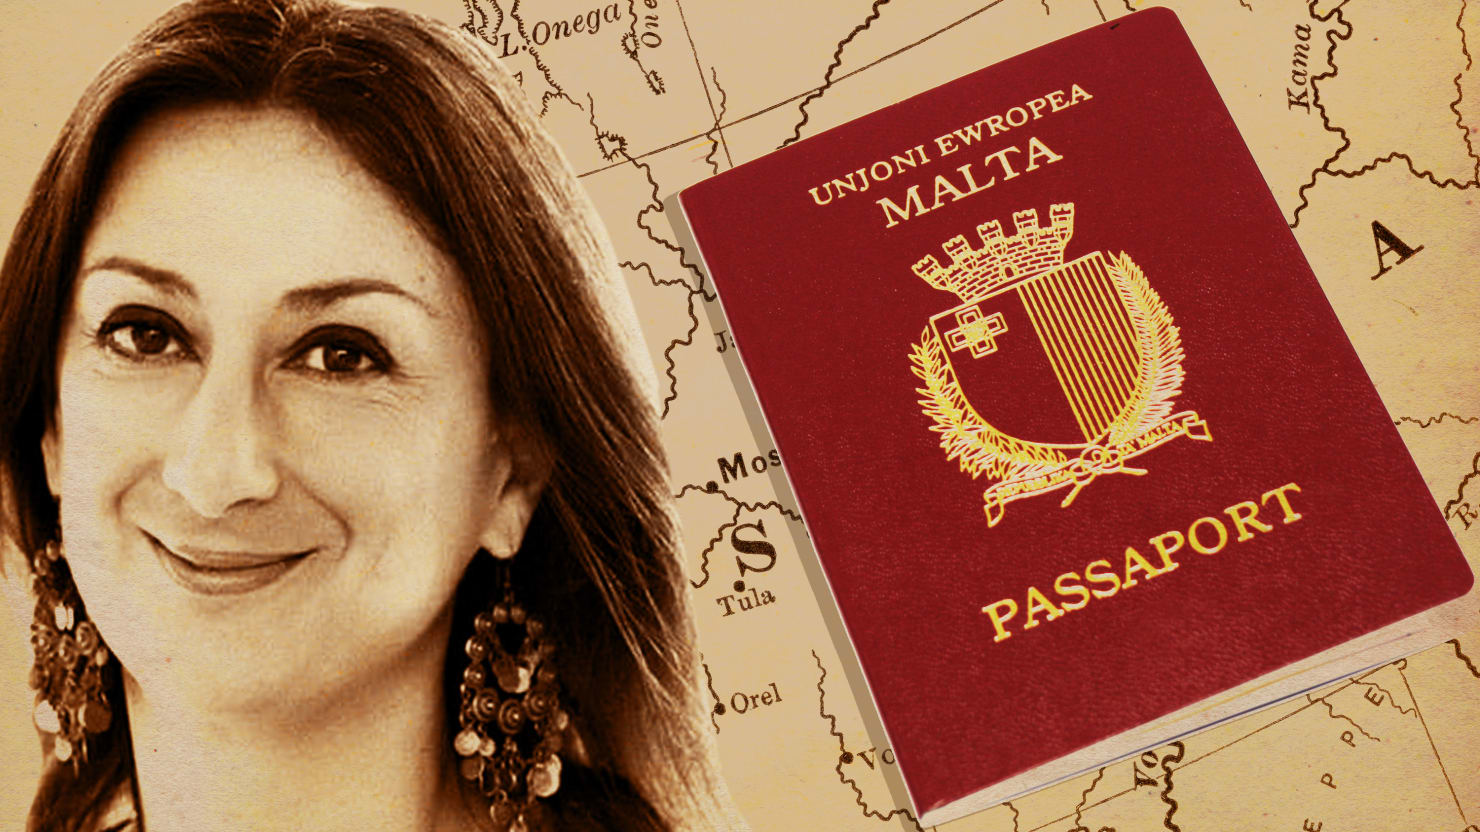 Rich Russians Still Buying Passports in Racket Daphne Caruana Galizia Died Exposing